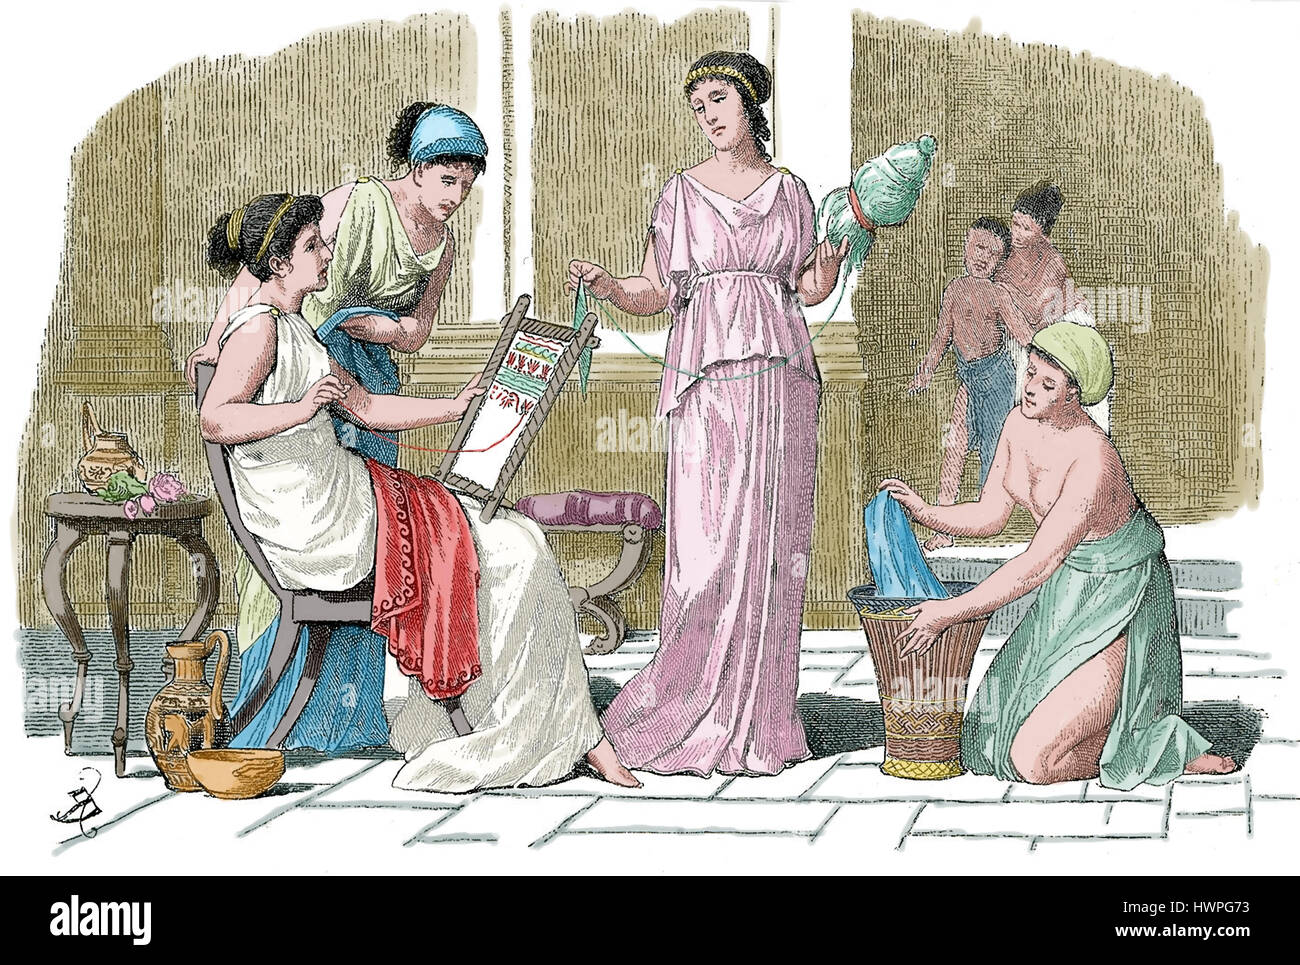 an assessment of the women in ancient greek society Free greek women papers equality between men and women in modern society vs ancient greek society an assessment that has been translated into.